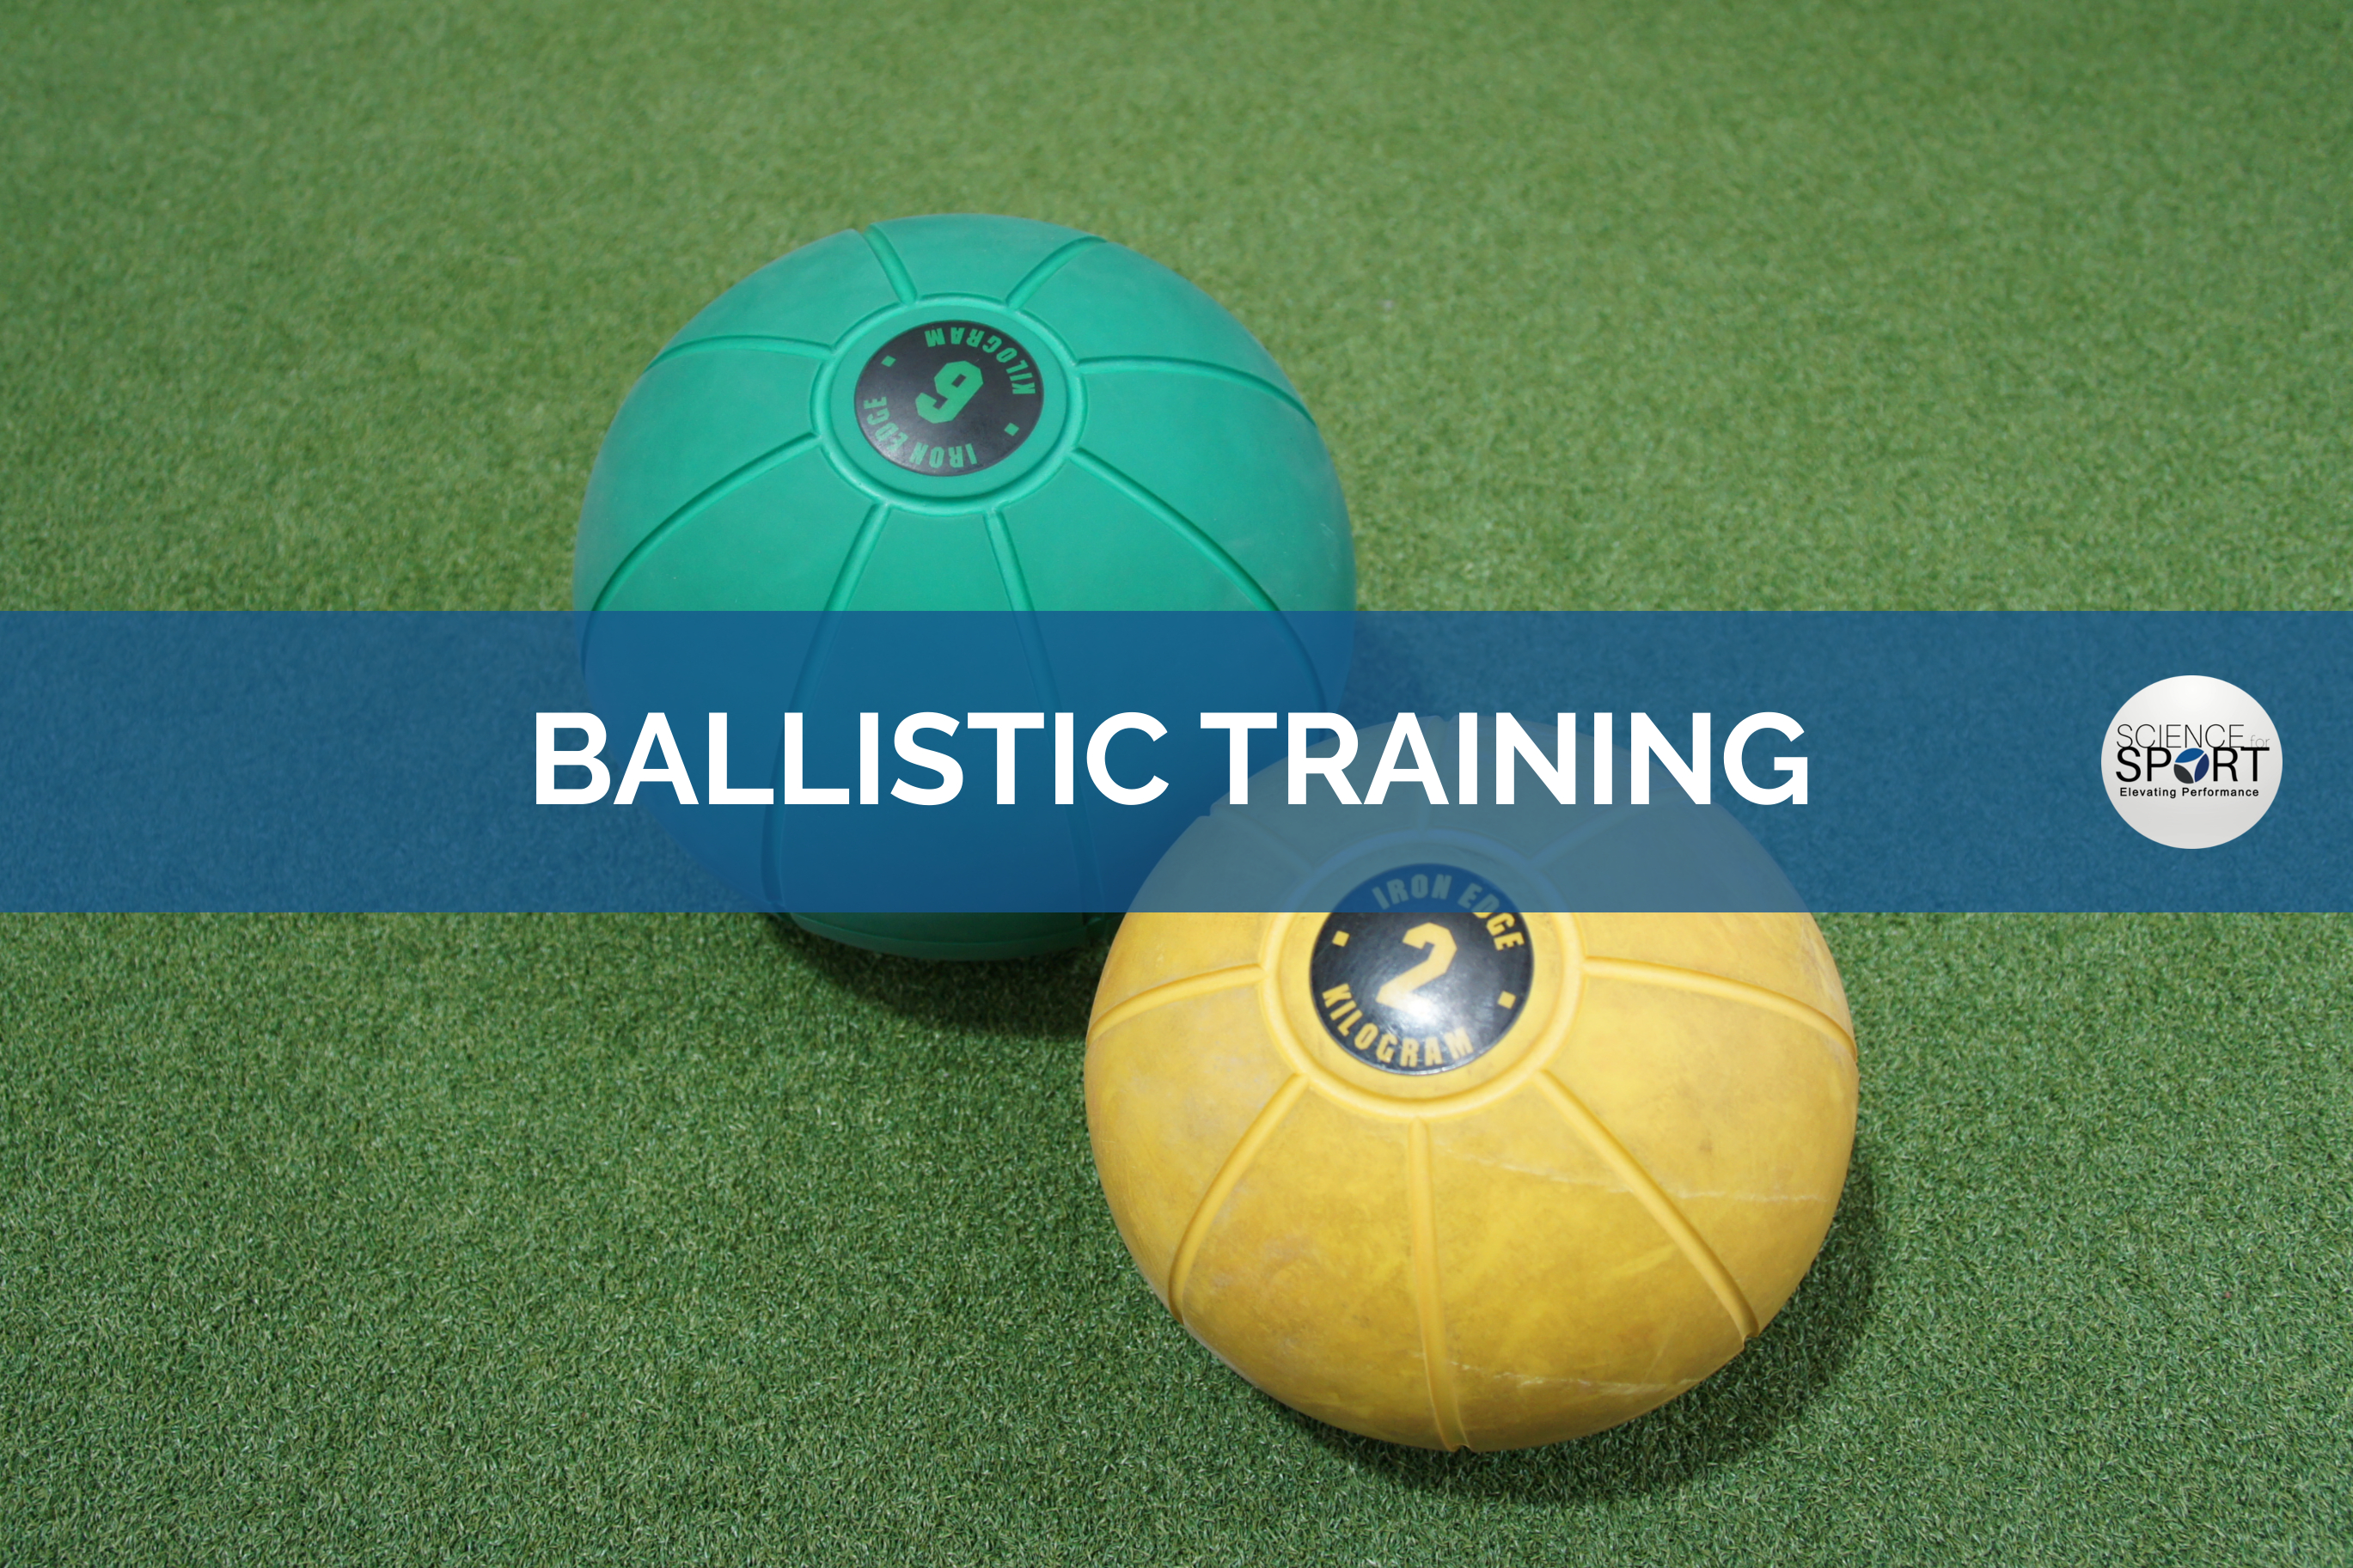 Ballistic Training - Science for Sport